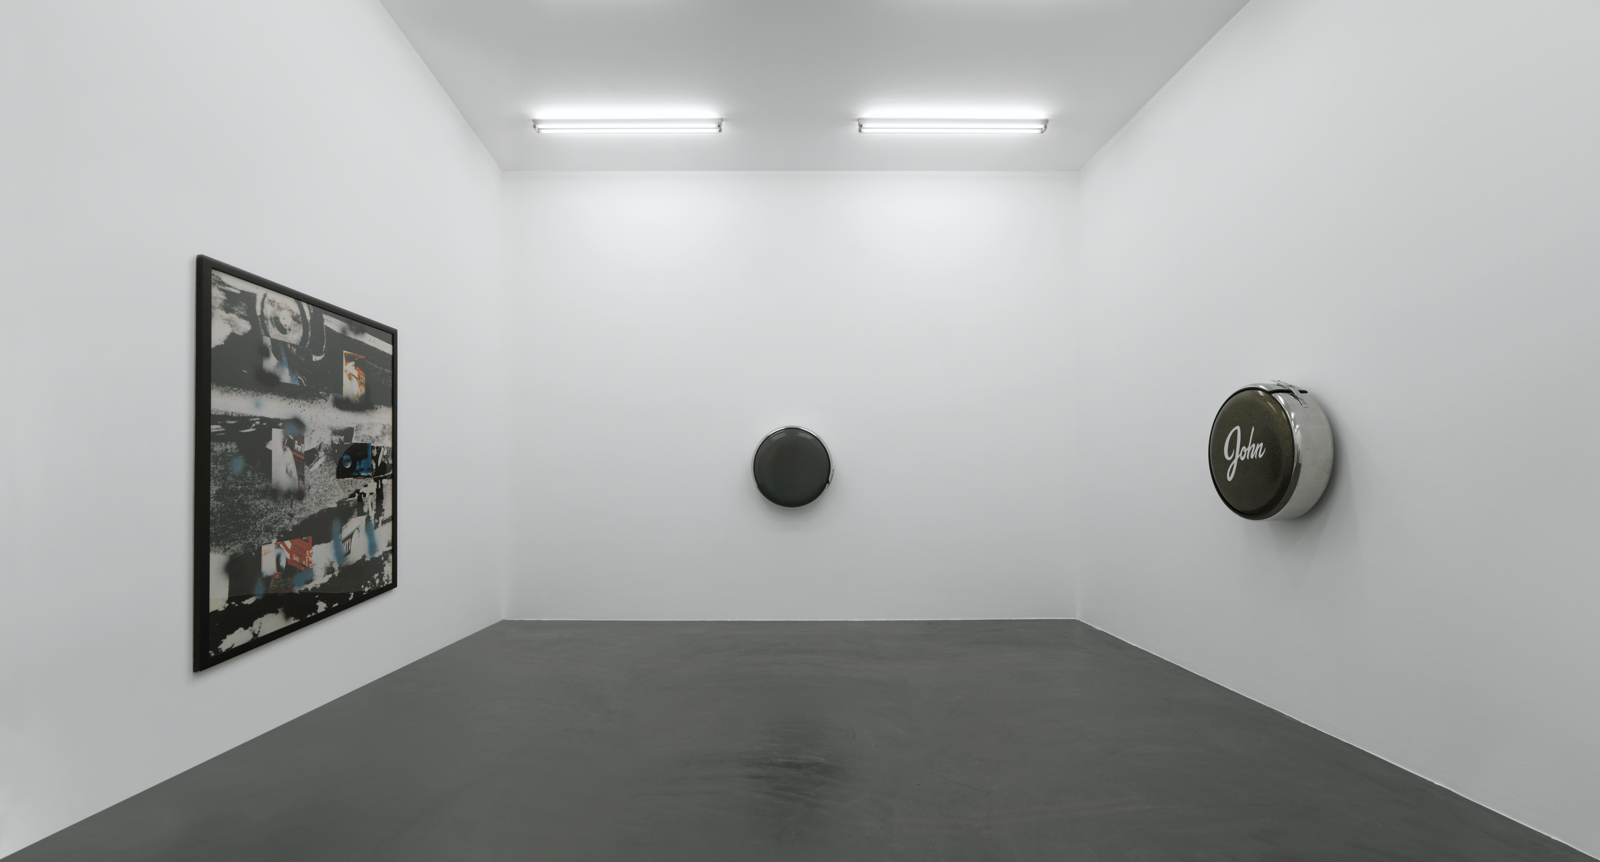 John Dogg / Exhibition view, Kunsthalle Zürich / 2008